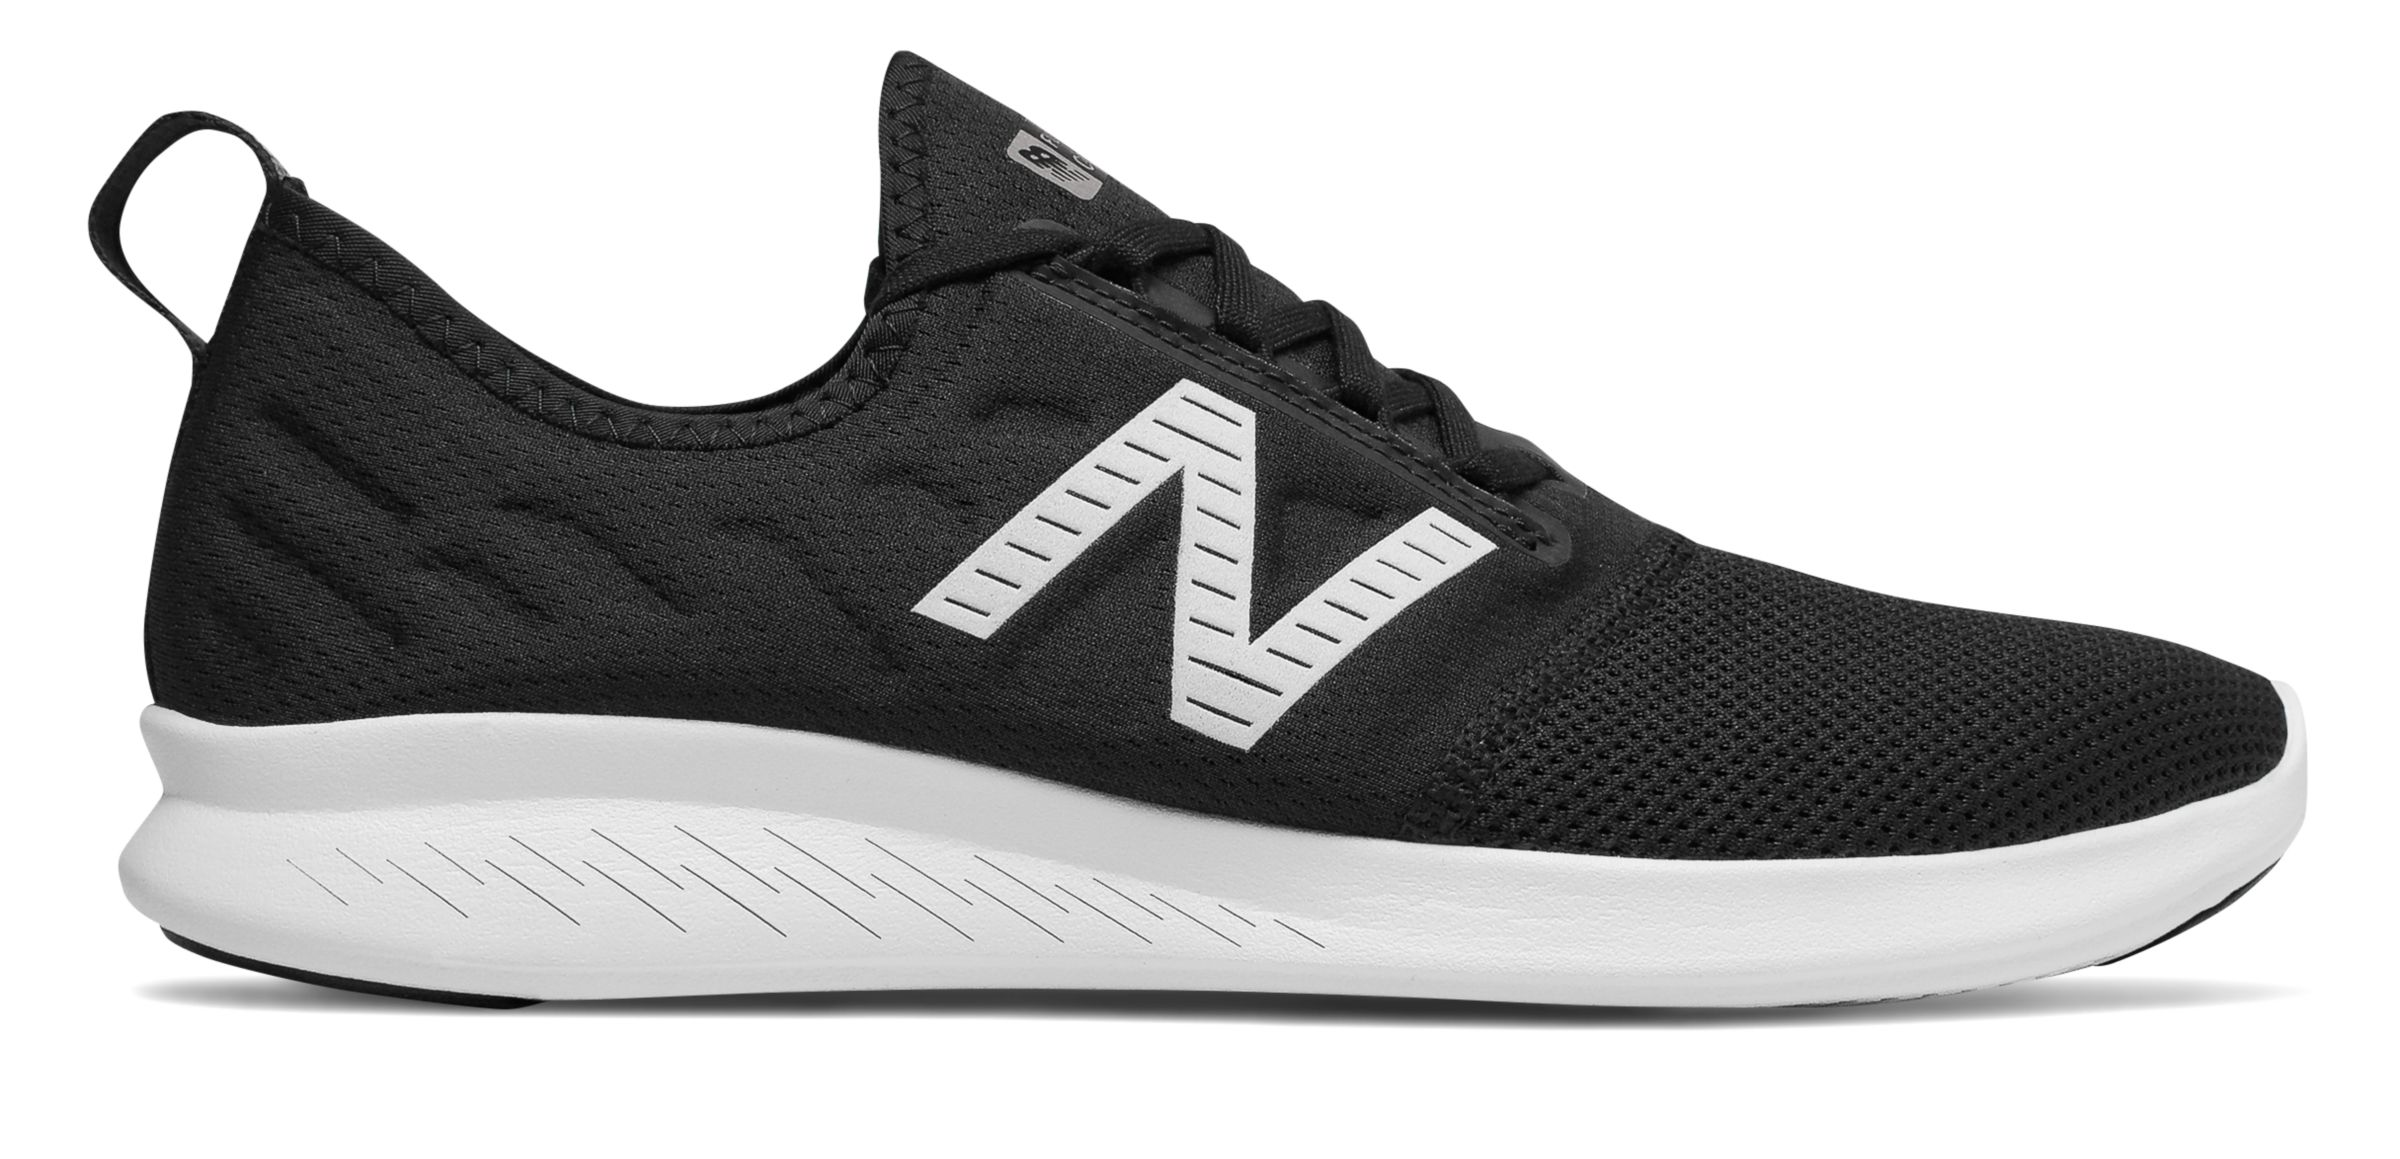 b5032ad2f00f New Balance Men s FuelCore Coast v4 Shoes Black with White